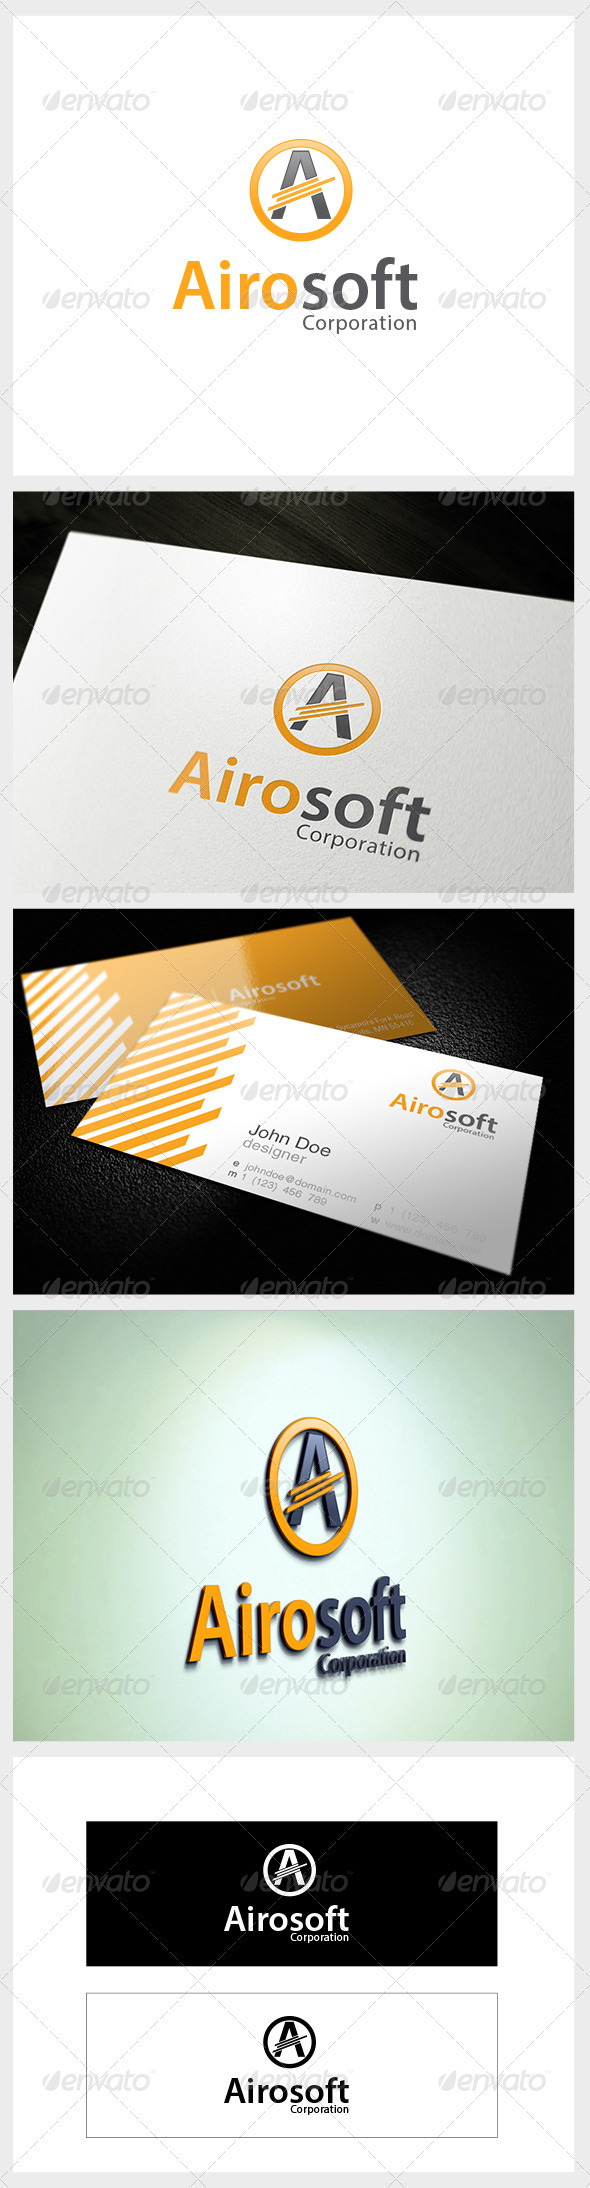 Airosoft Corporation logo - Letters Logo Templates